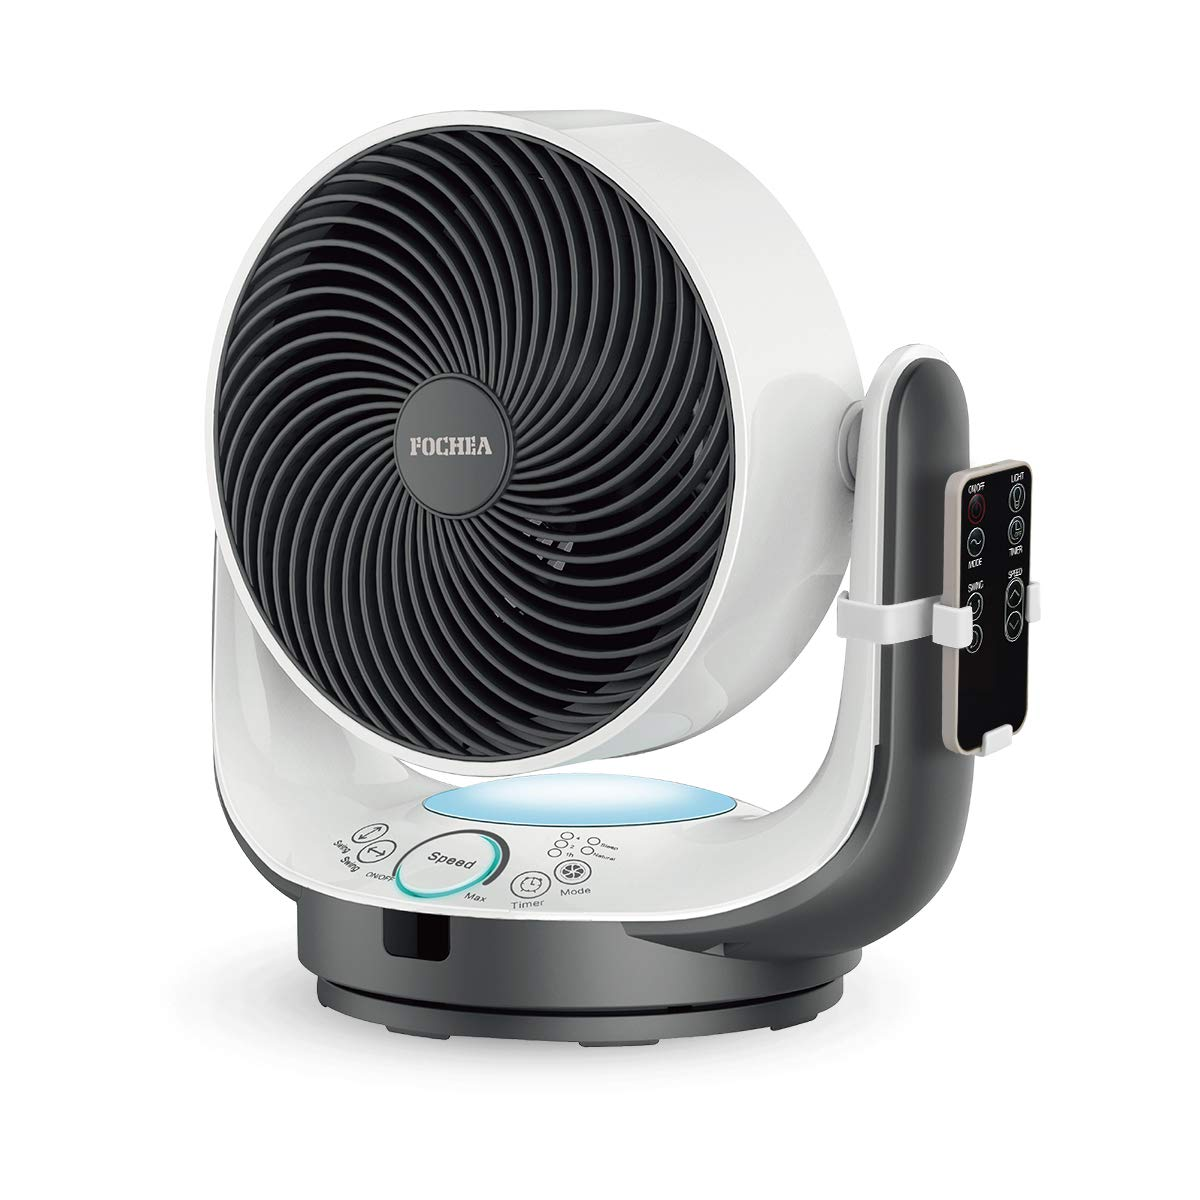 FOCHEA Air Circulator Fan Powerful Oscillating Desk Fan/Table Fan Enhanced Airflow Multi-Mode with Remote Control,8 Speeds Adjustable, 90 Degree Head Swing & 7 Kinds of Timer Setting for Home Office by FOCHEA